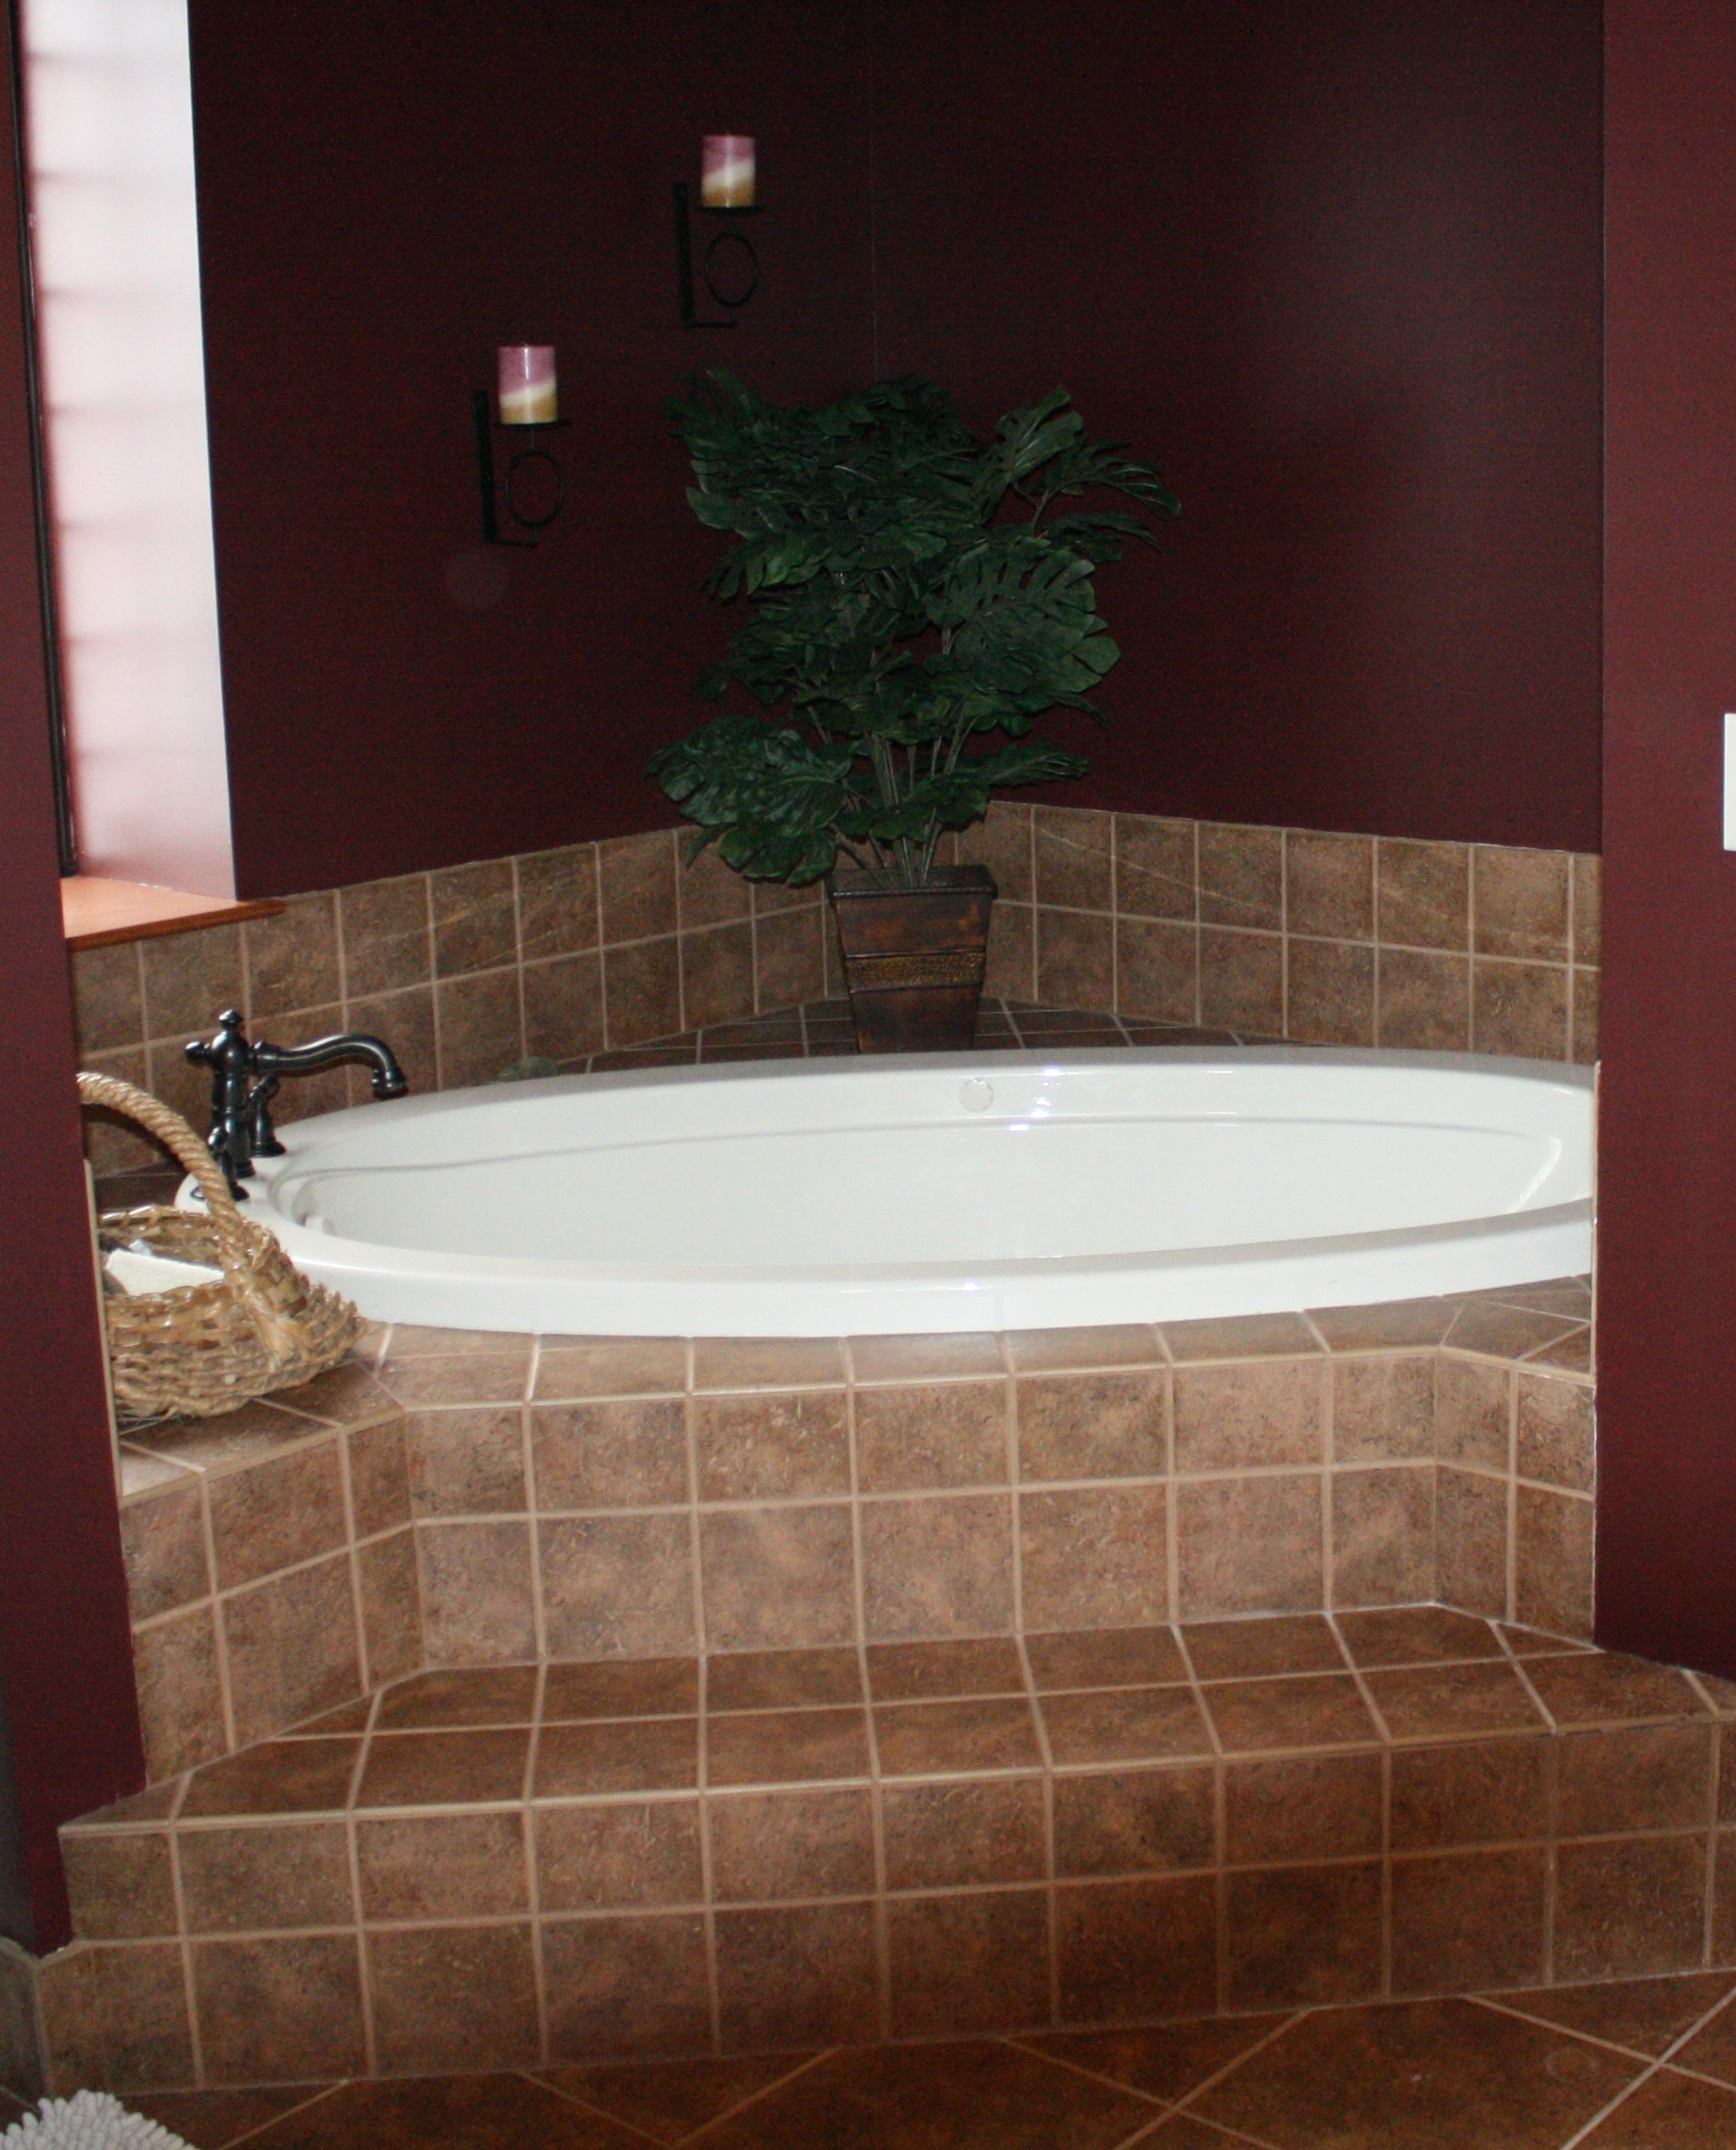 m georgian crop luxury whirlpool tub jetted